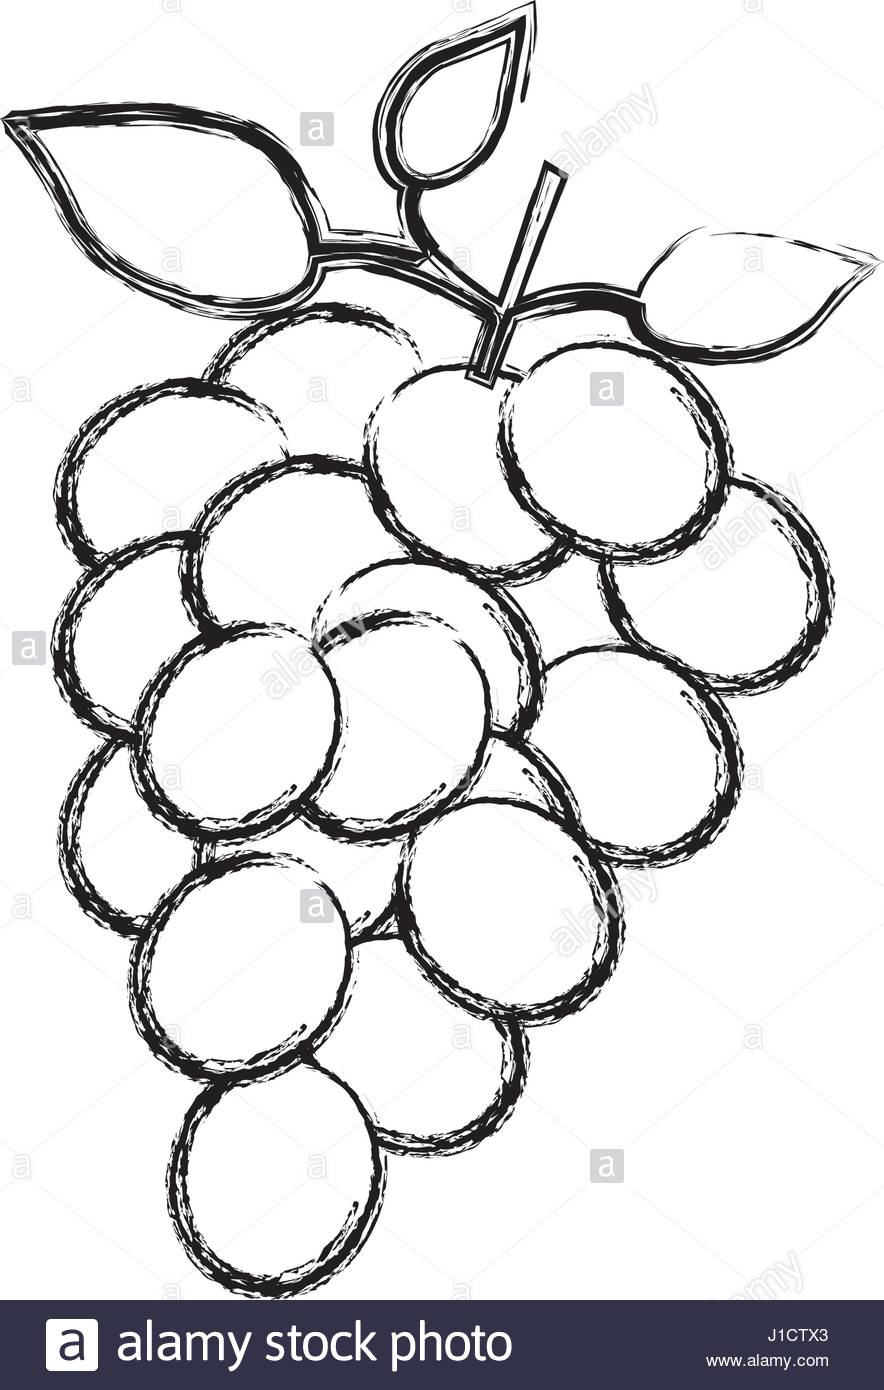 884x1390 Monochrome Sketch Silhouette Of Bunch Of Grapes Stock Vector Art